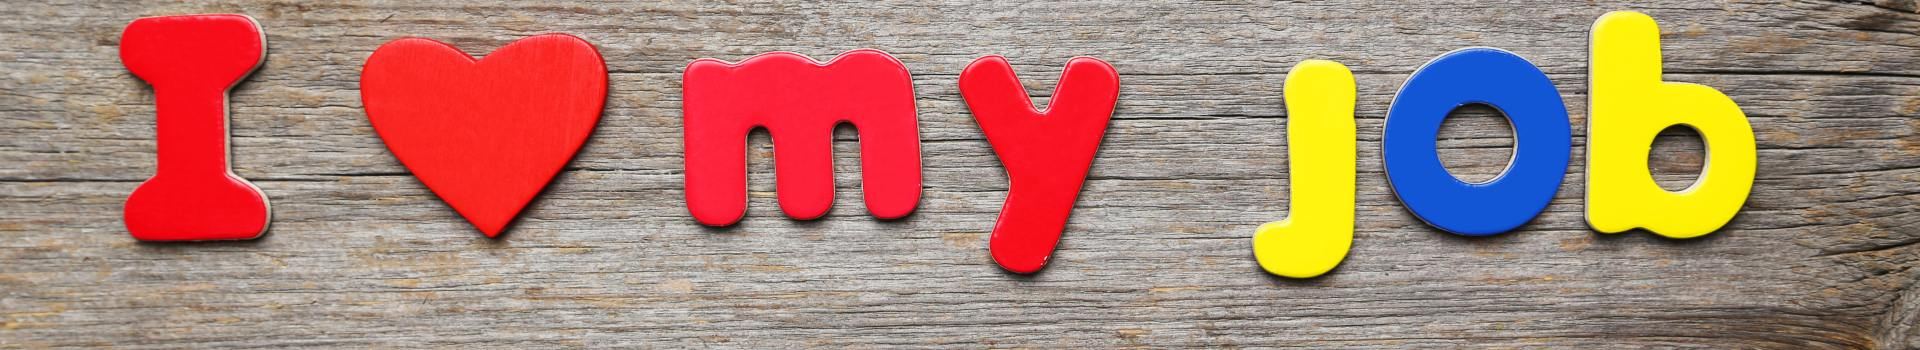 Letters spelling 'I love my job' on wood background